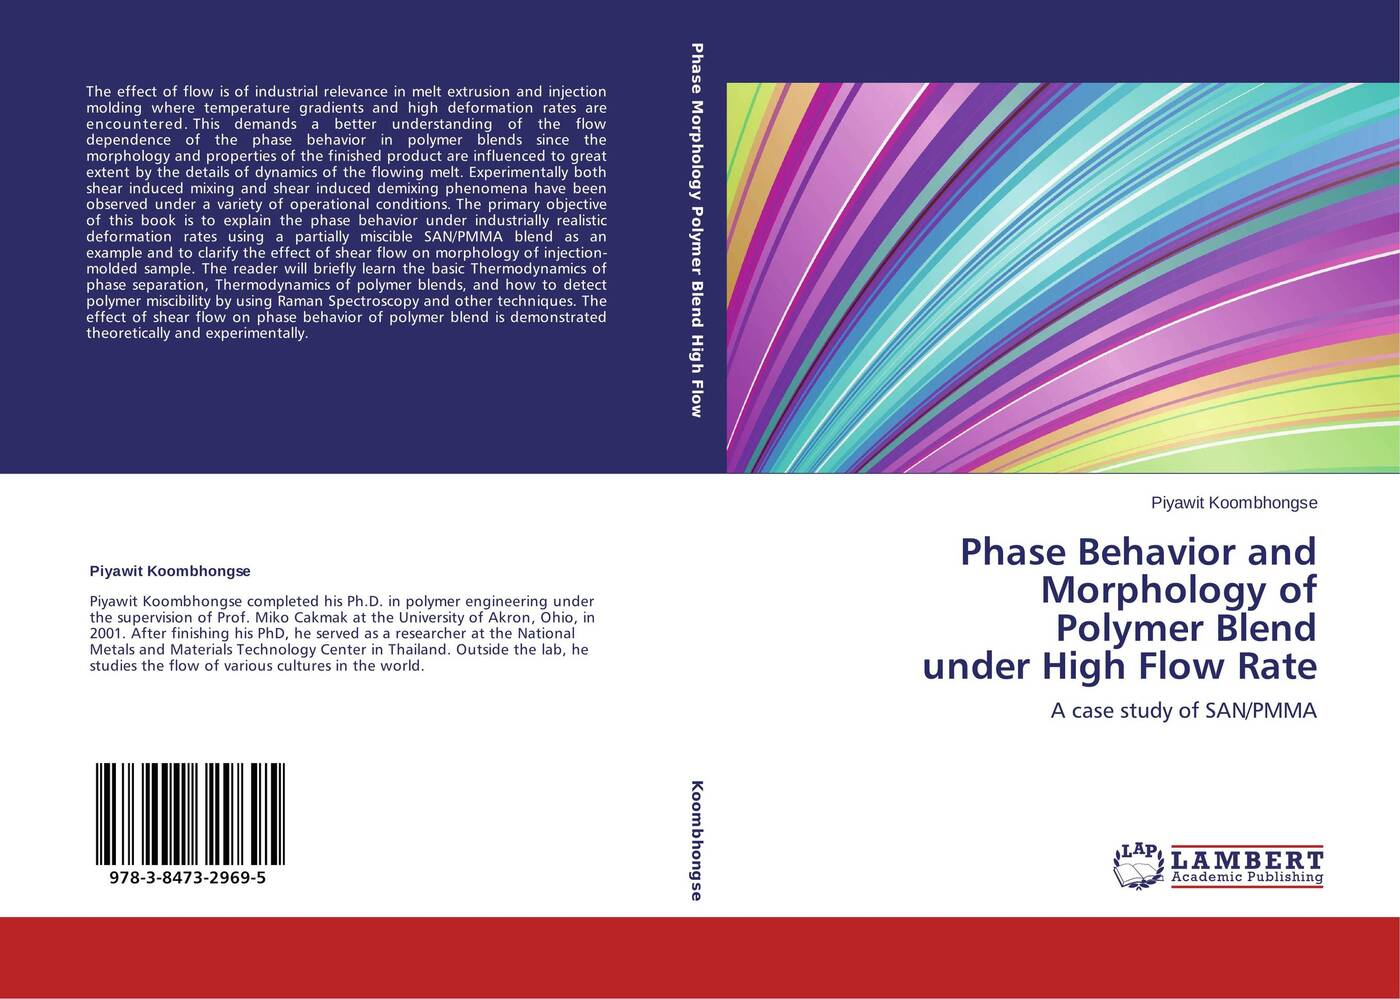 Piyawit Koombhongse Phase Behavior and Morphology of Polymer Blend under High Flow Rate mohamed aymen elouaer maher souguir and cherif hannachi effect of nacl priming on germination behavior of fenugreek